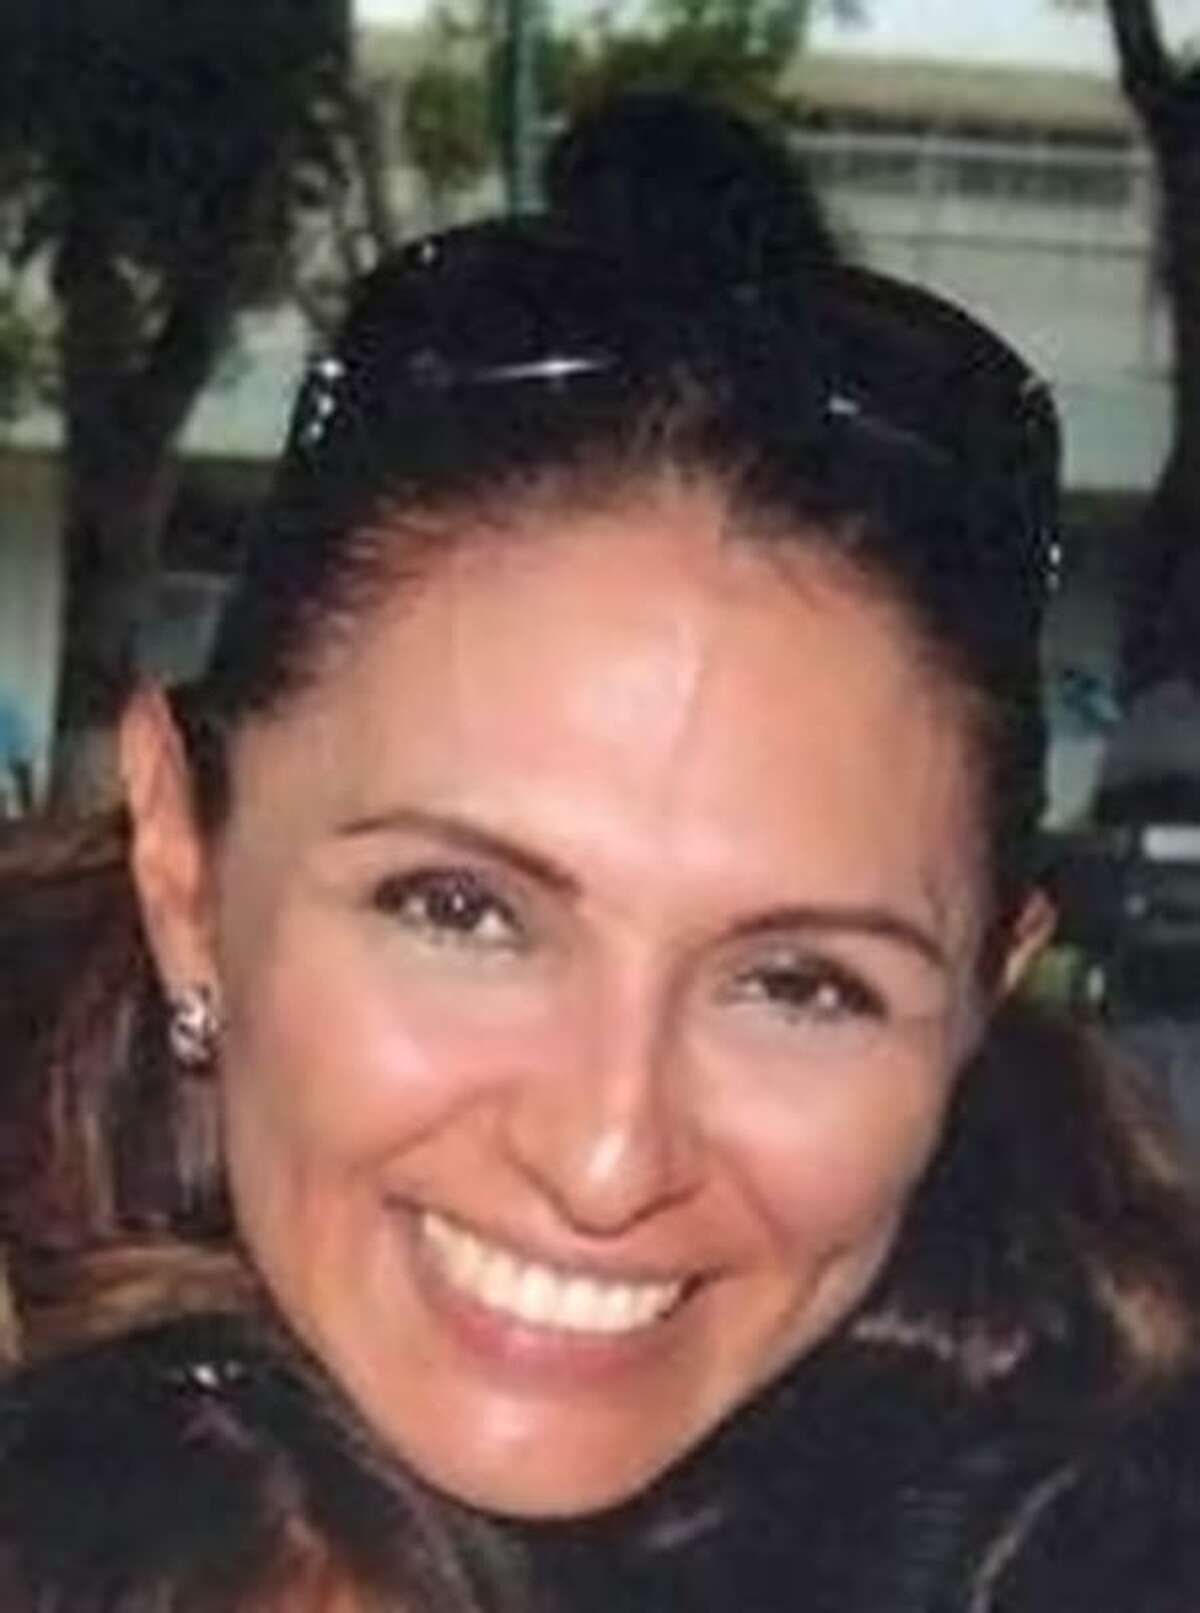 A federal appeals court has overturned a bank fraud conviction of a former Mexican official's wife, Silvia Beatriz Pérez Ceballos, whose case was the first and only one to go to trial in a string of money laundering investigations in south Texas.